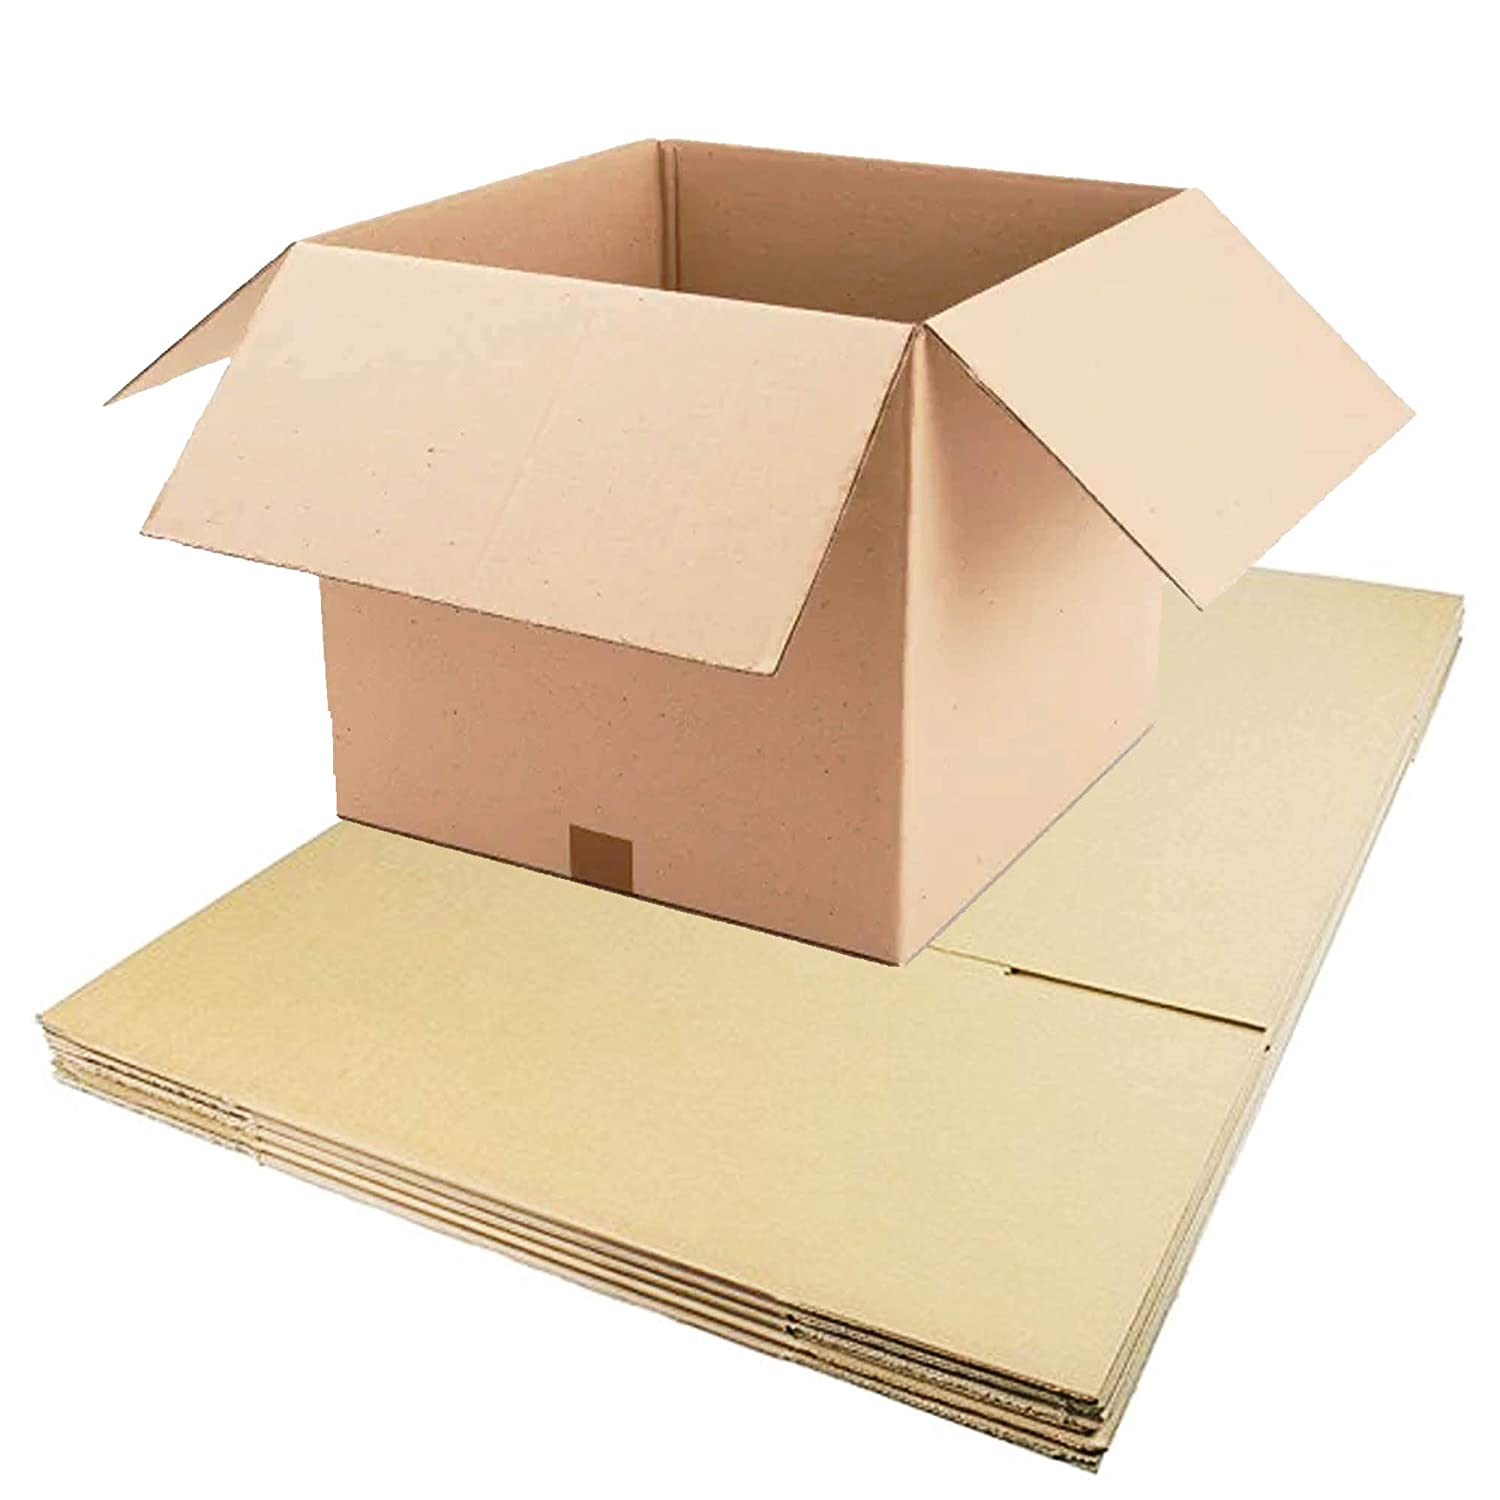 10 x LARGE DOUBLE WALL MOVING CARDBOARD BOXES 24x18x18